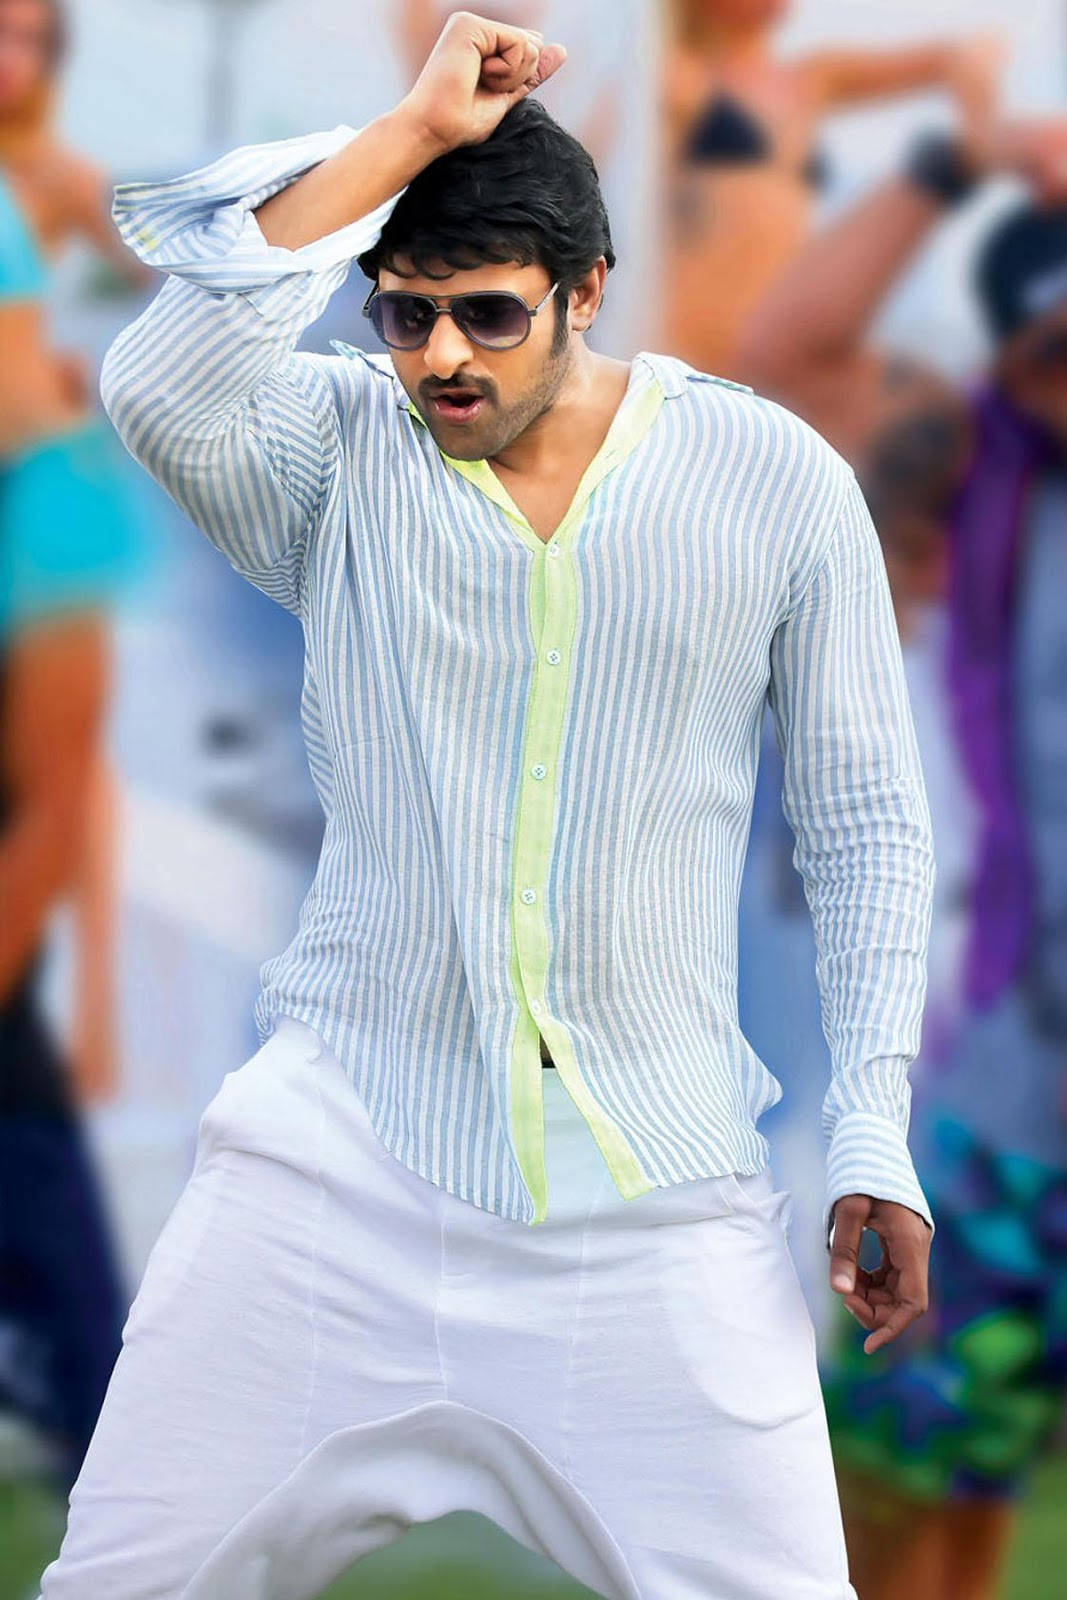 rebel star prabhas mirchi images of christmas crrgeh merry2020christmas info rebel star prabhas mirchi images of